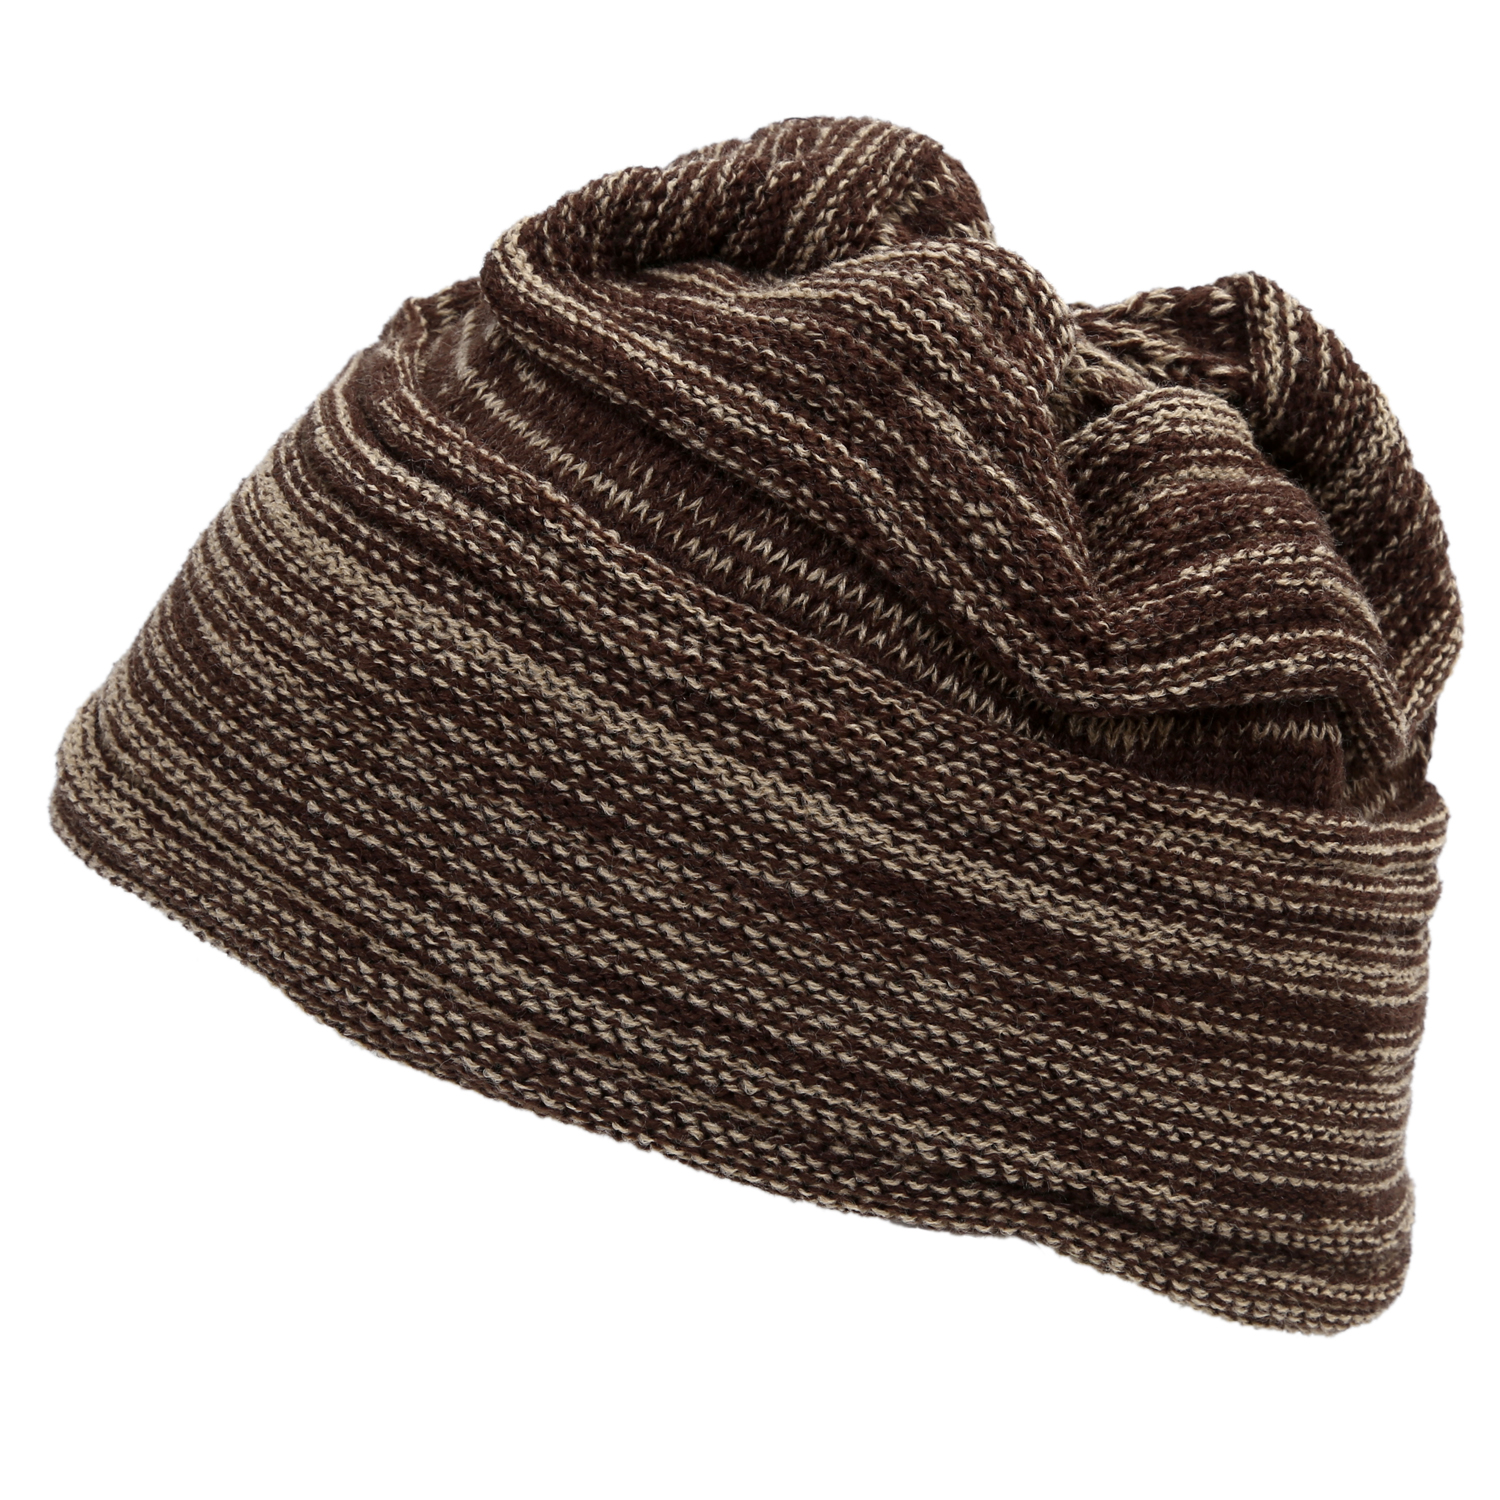 f6f5142856 Coffee Khaki Mens CuteThick Knit Warmer Ribbing Cuff Beanie Hatfor Men  Gift-in Girl s Hats from Apparel Accessories on Aliexpress.com